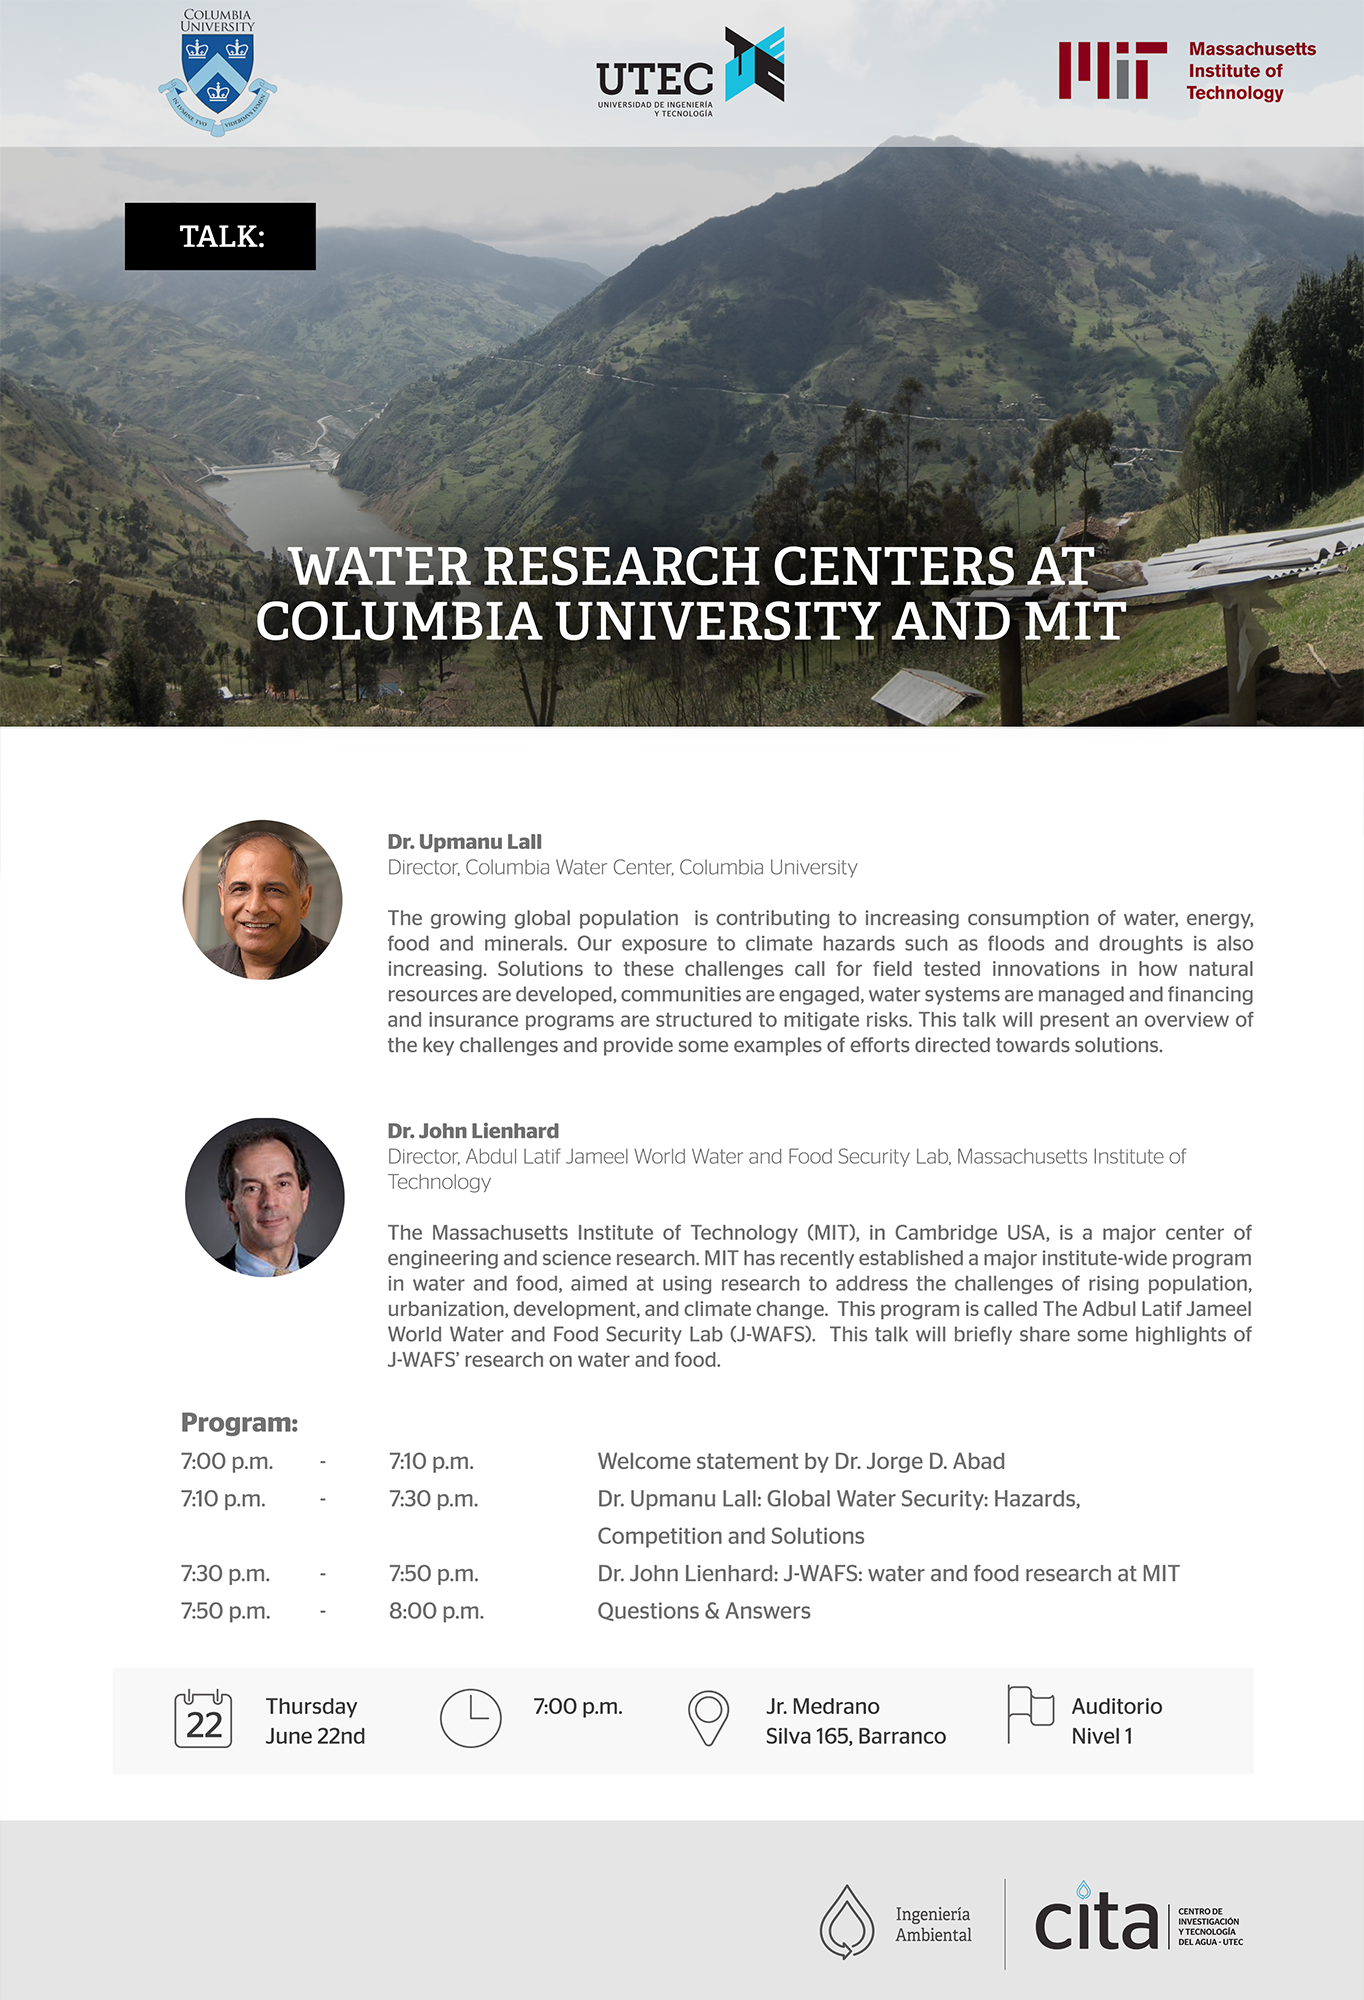 Talk: Water Research Centers at Columbia University and MIT